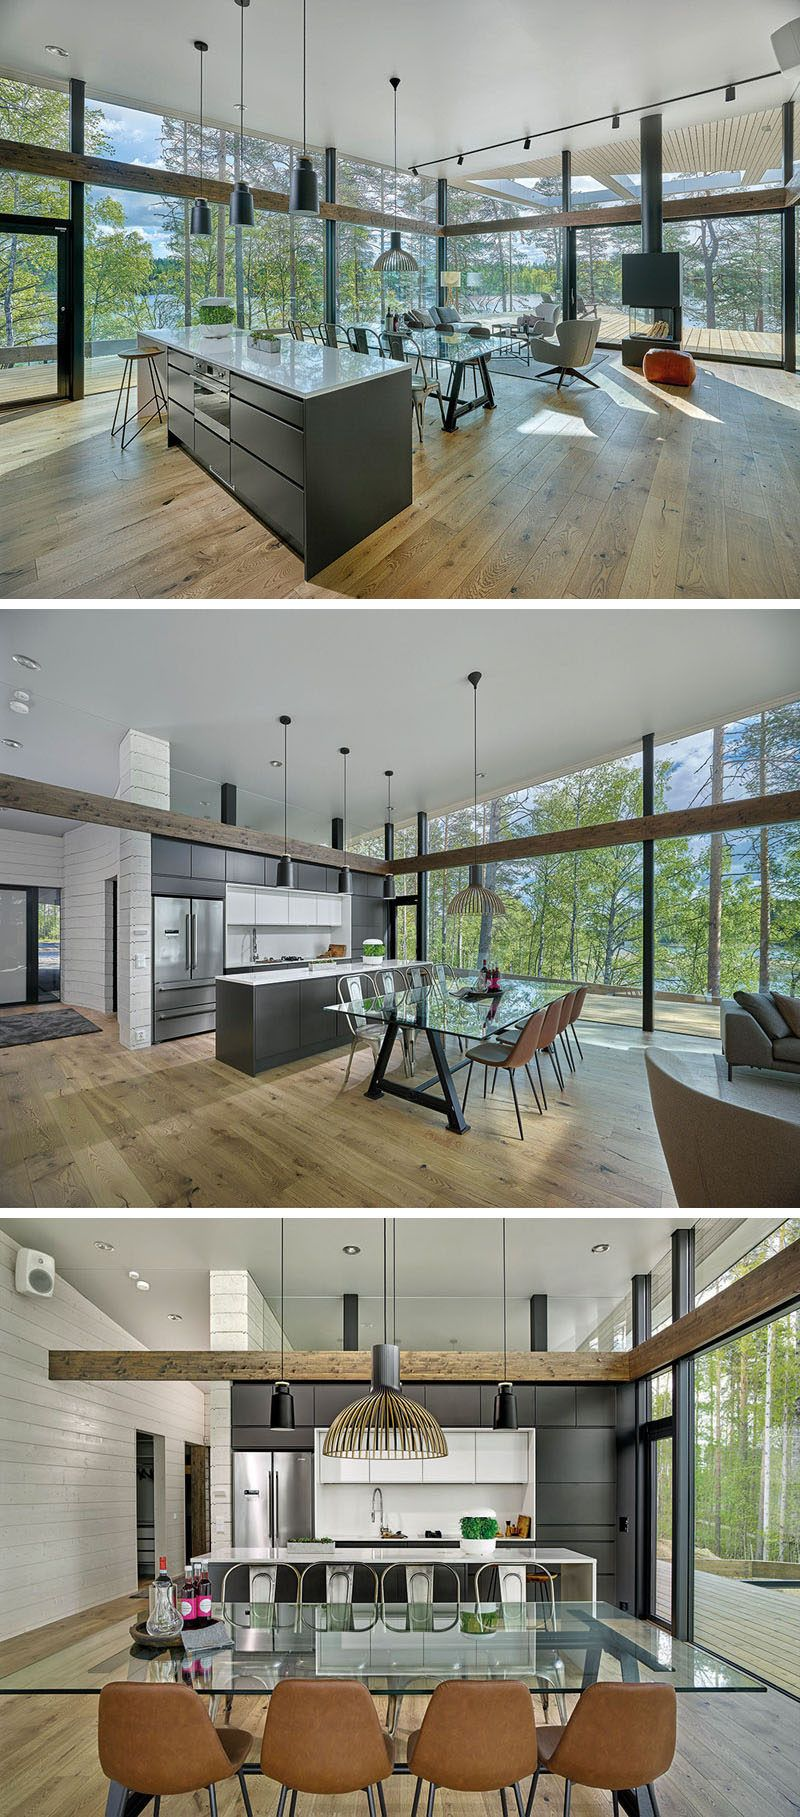 The Shape This House Finland Was Inspired Design Planes And Boats Com Imagens